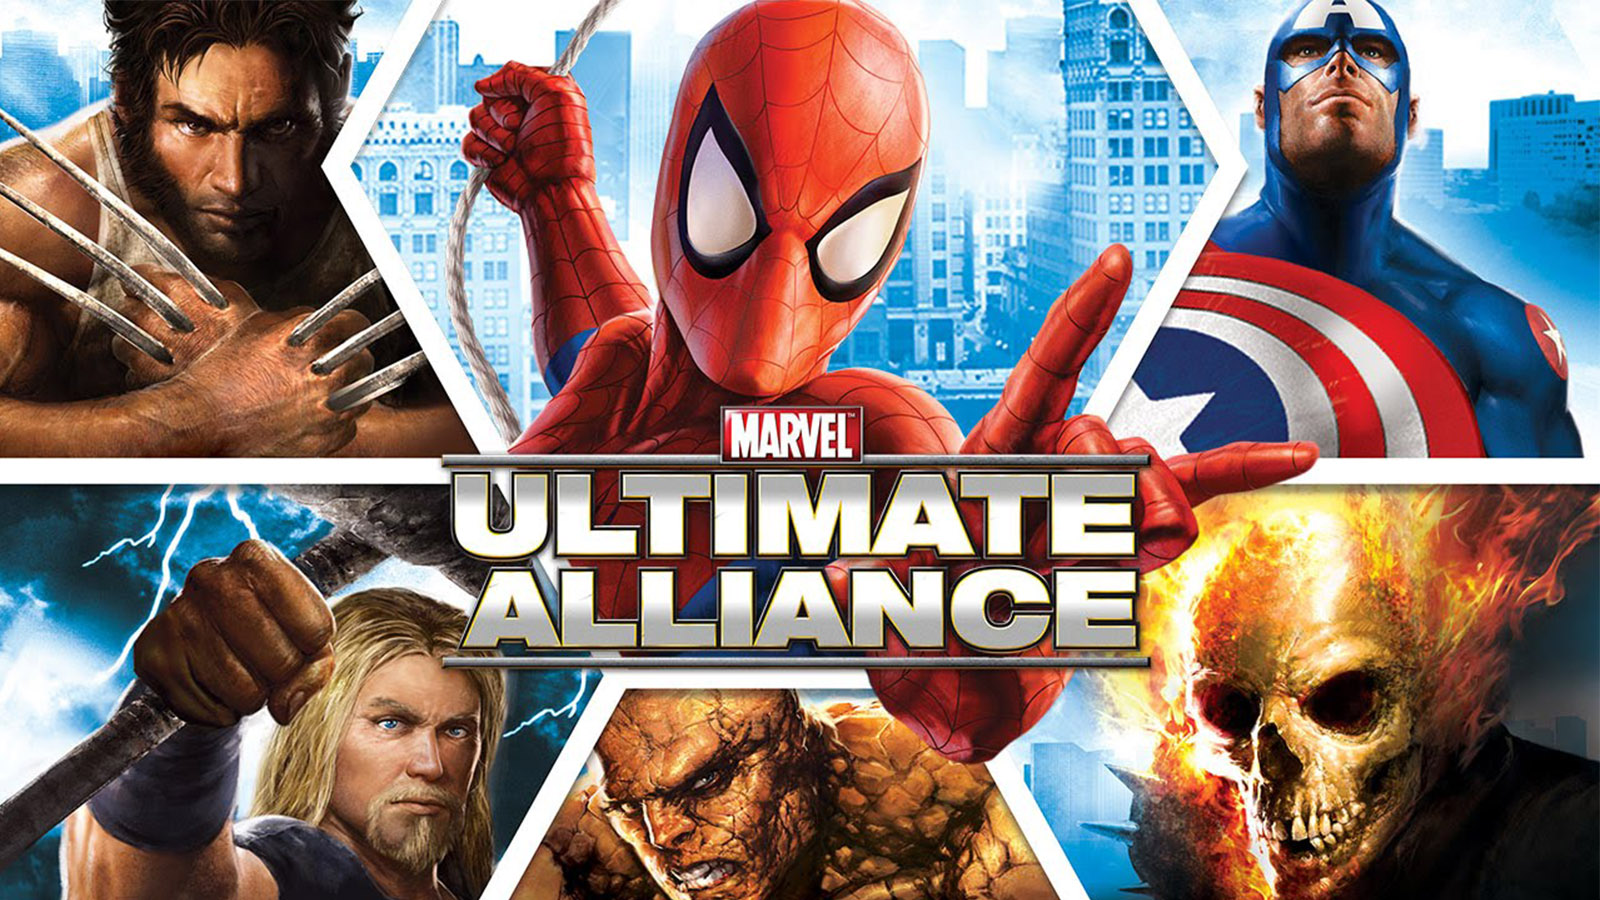 Marvel: Ultimate Alliance was originally released for PS2 and Xbox.